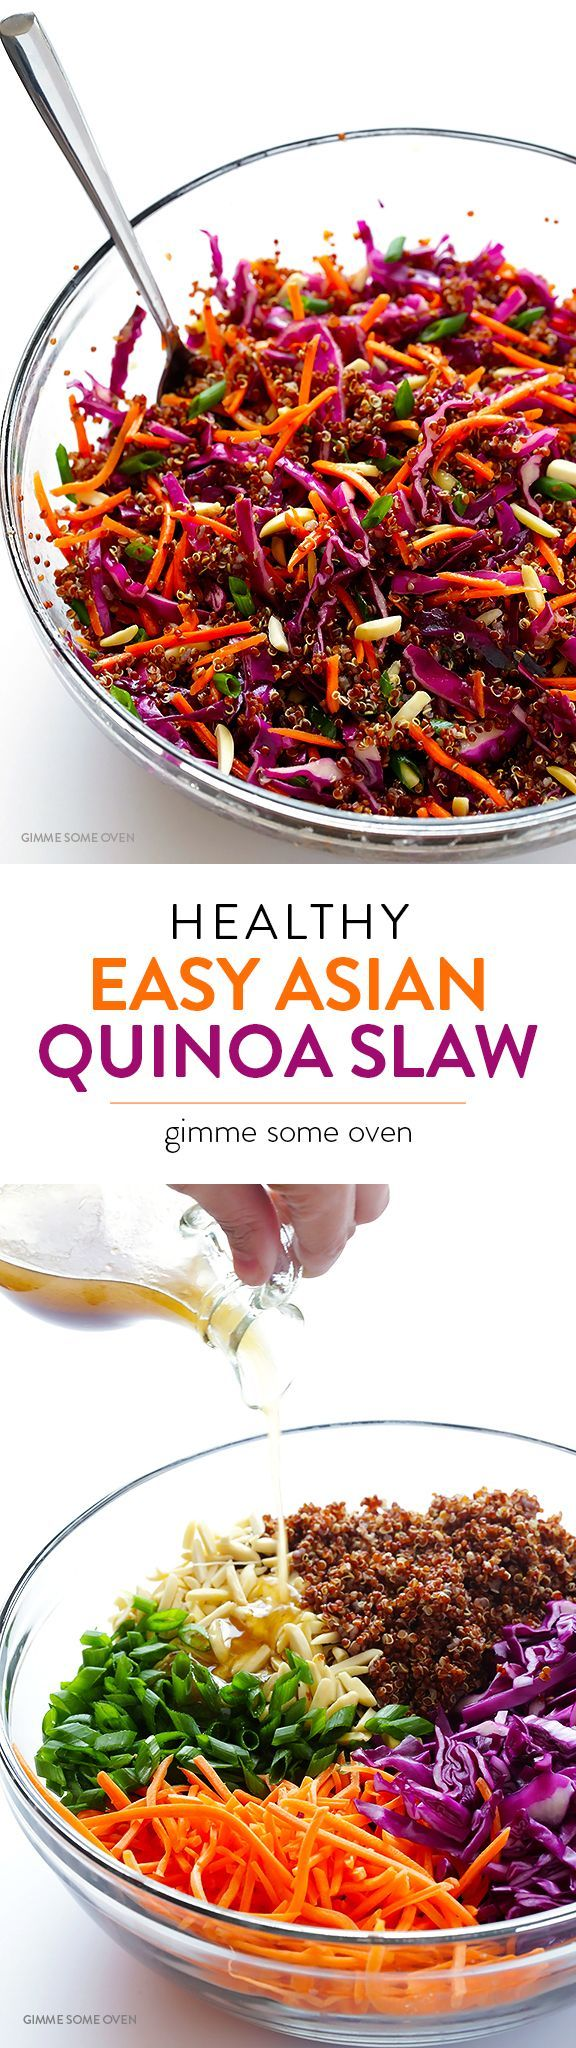 Easy Asian Quinoa Salad // gorgeous, fresh full flavor, packed with veggies & protein #healthy